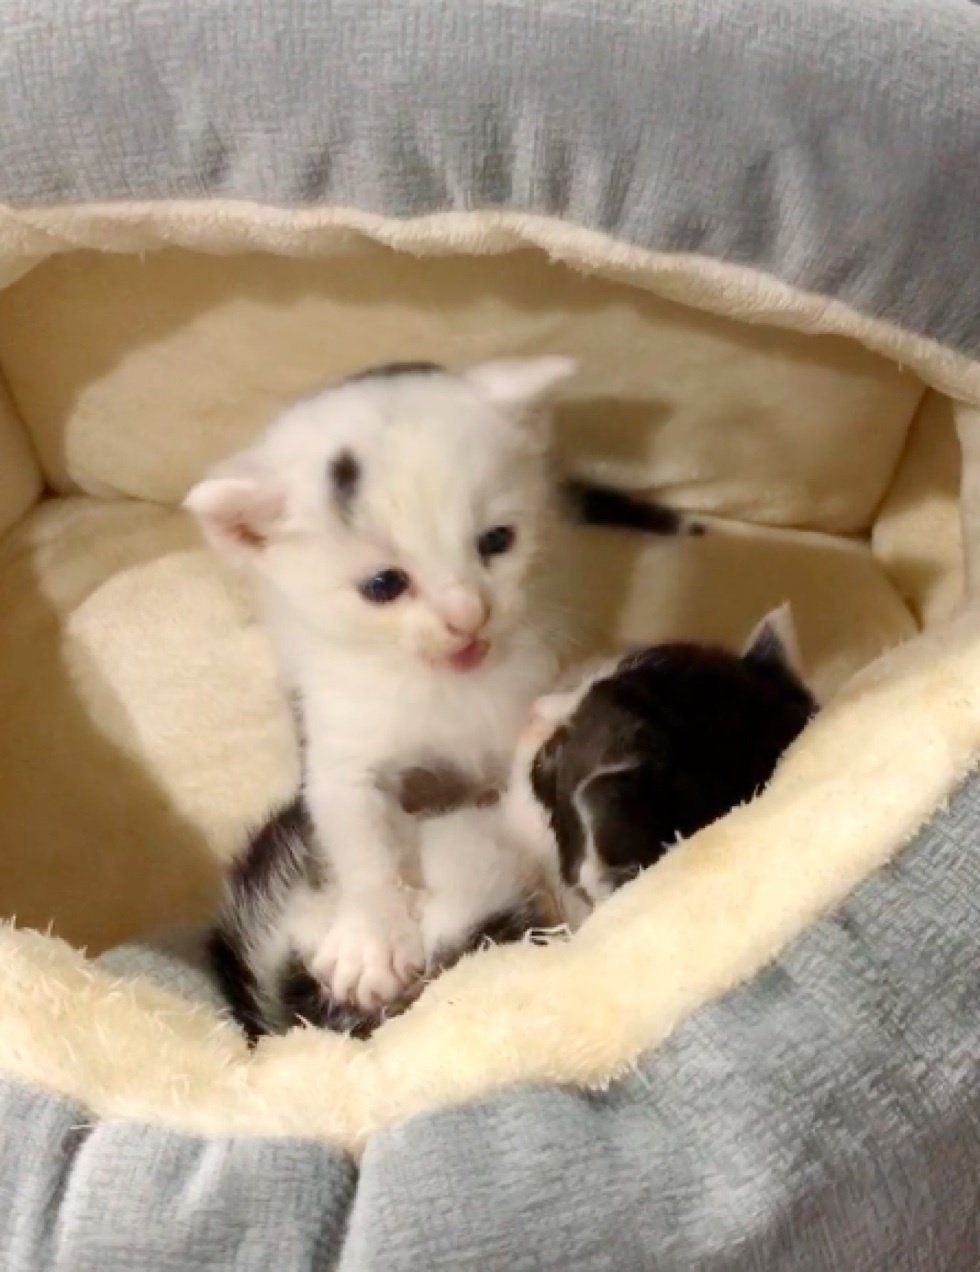 Kittens Found Crying on Loading Dock, Get Muchneeded Help